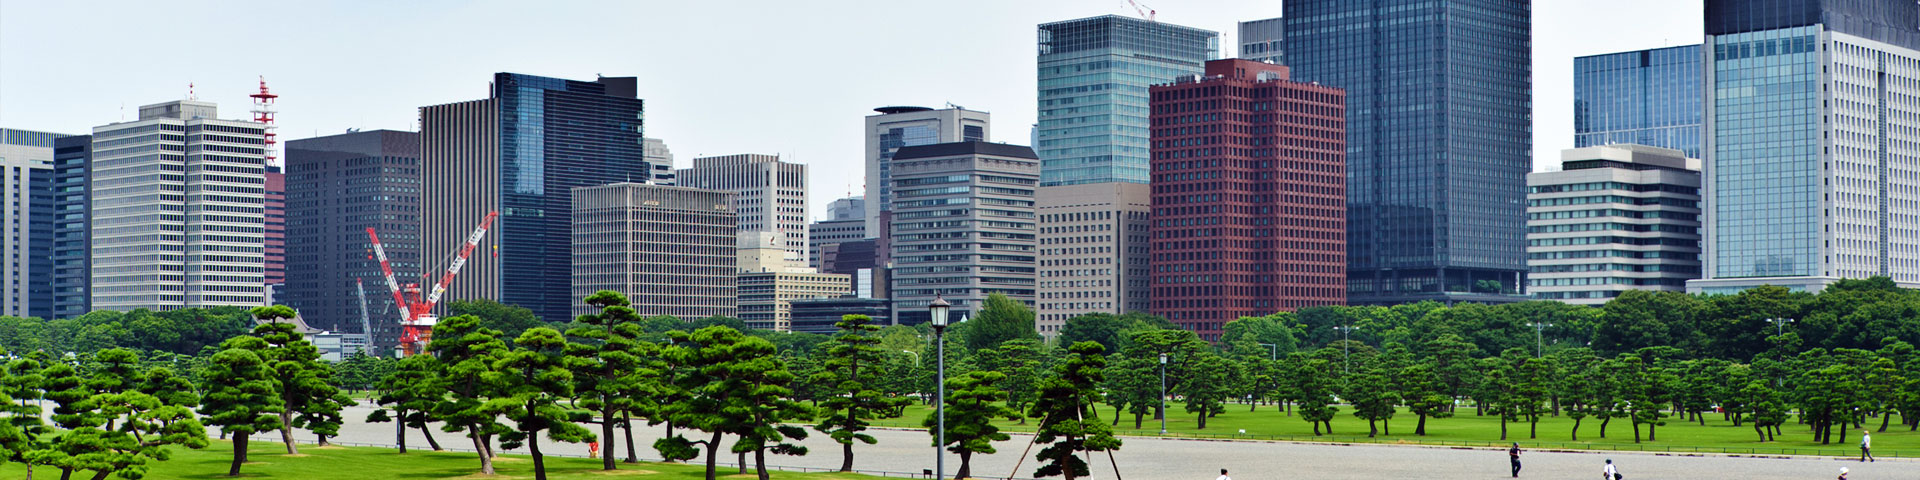 Tokio Otemachi Datenzentrum